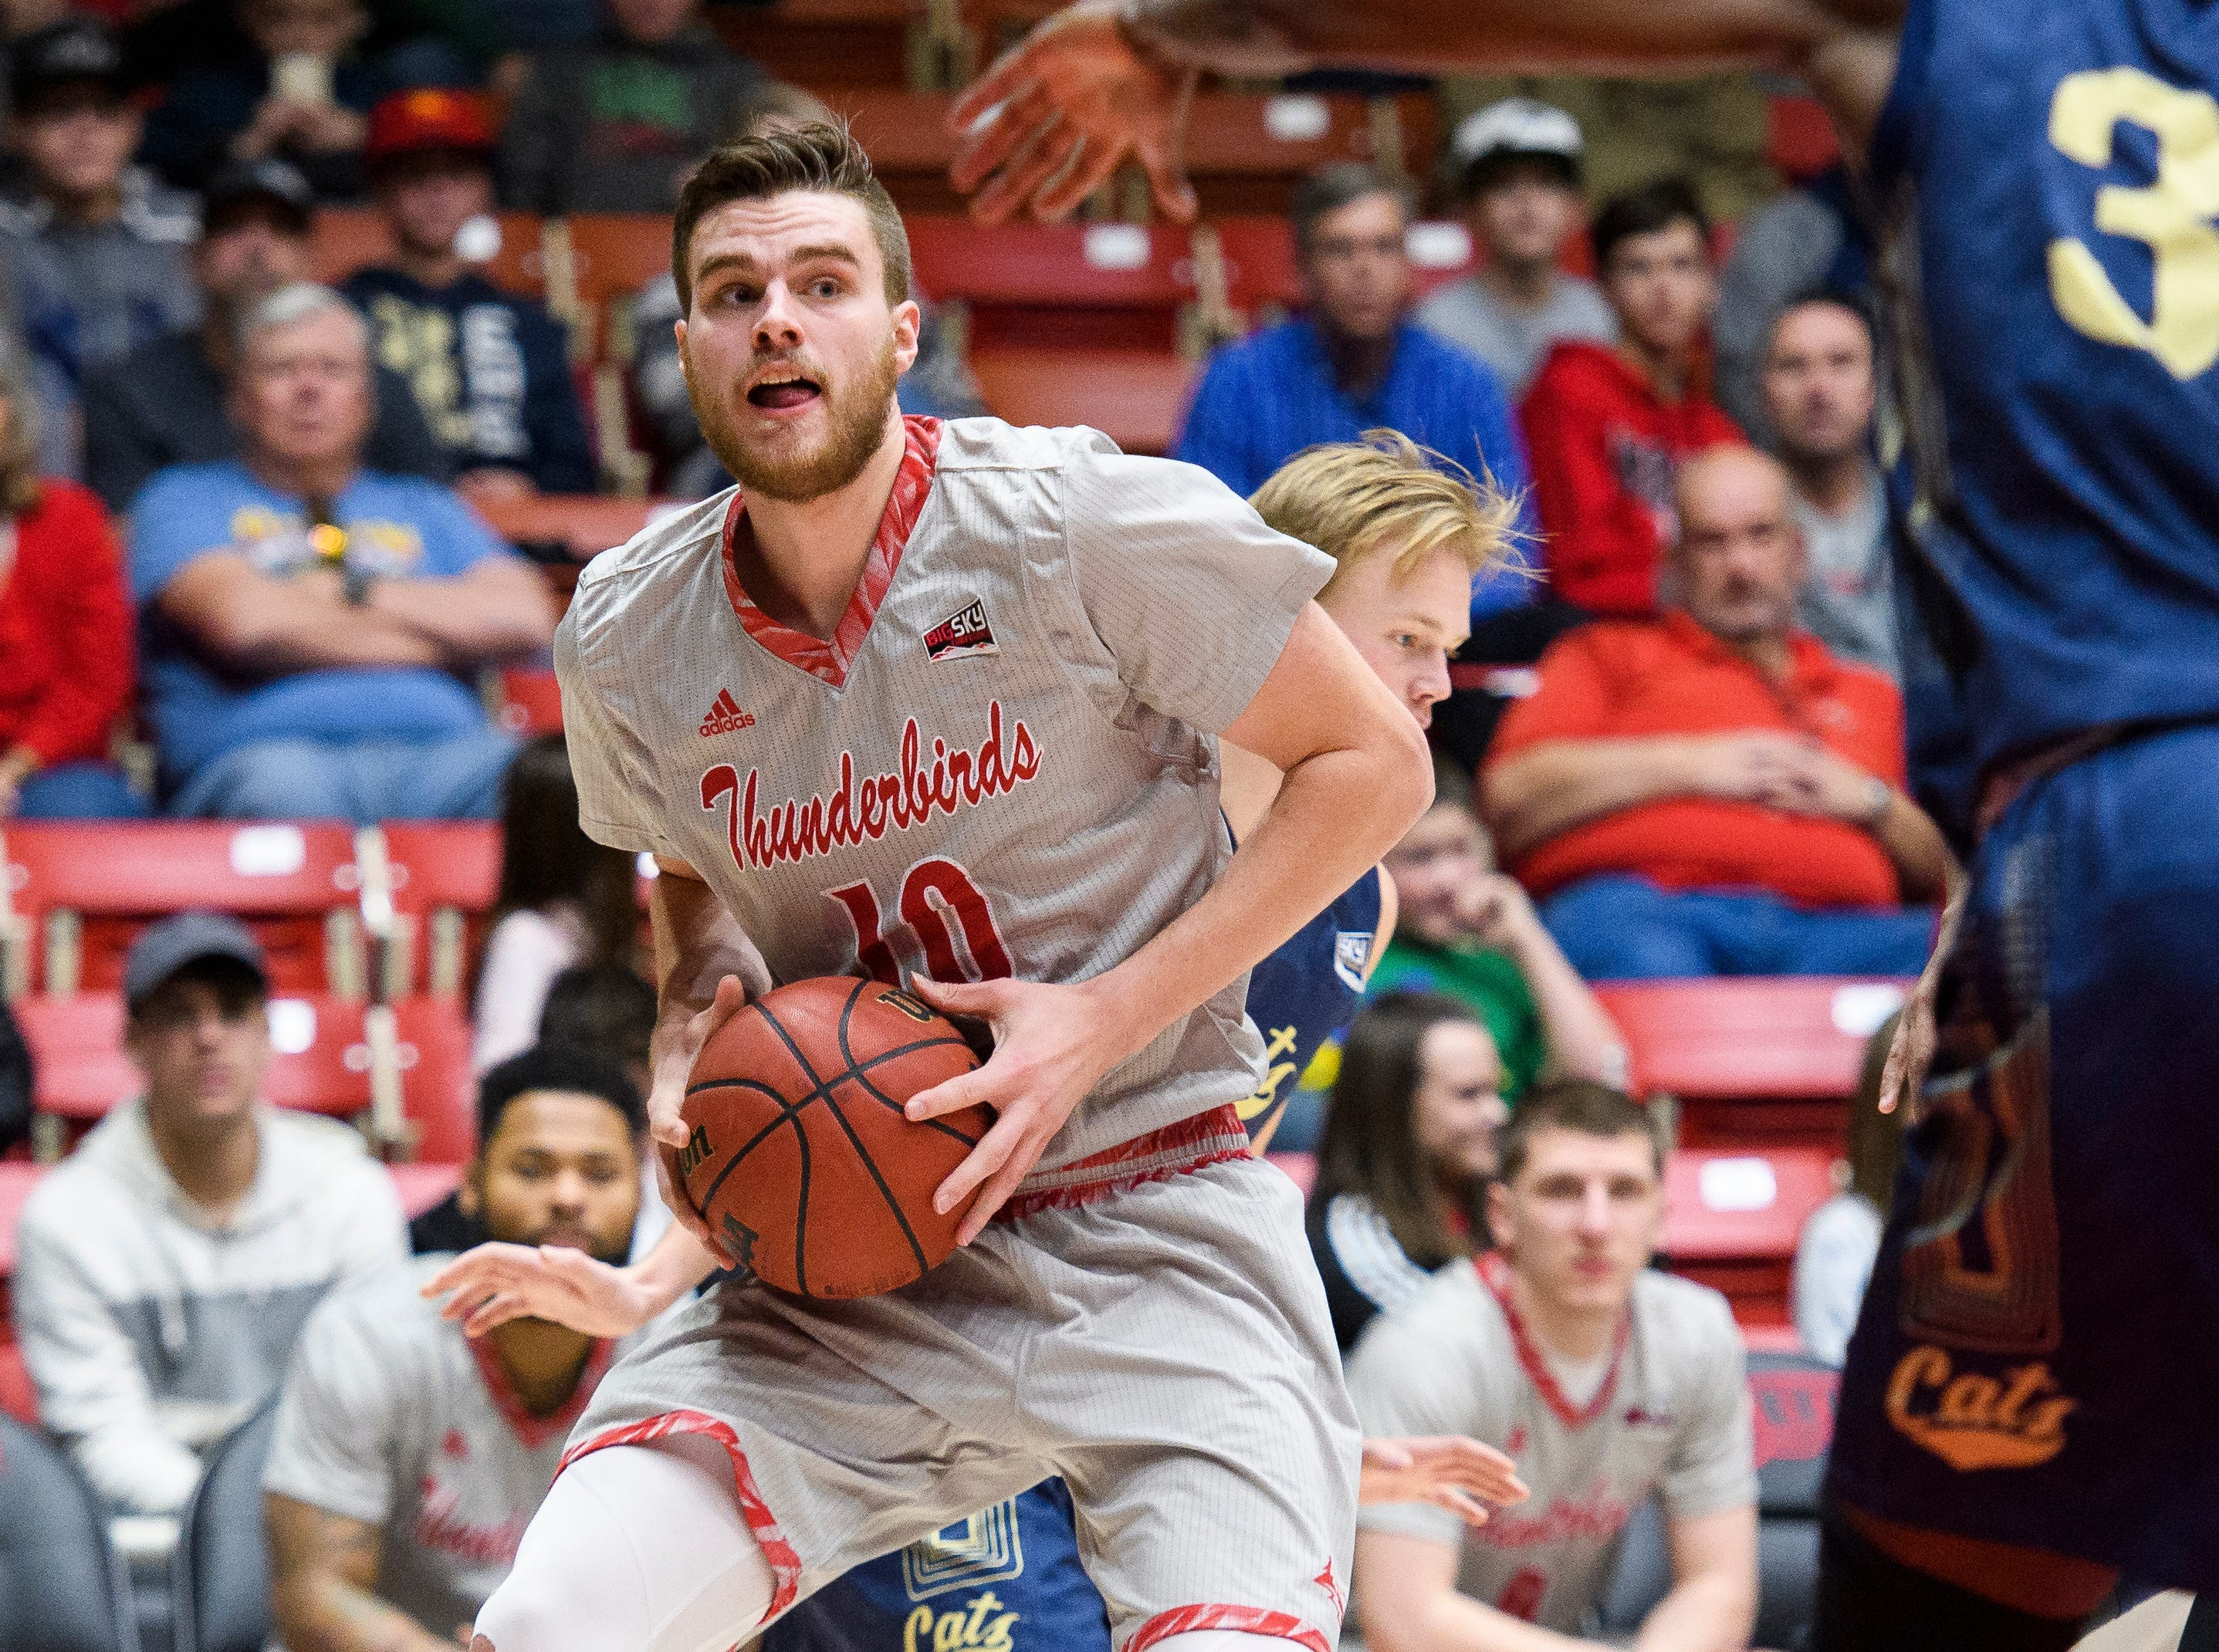 Southern Utah University junior Jacob Calloway (10) looks to the basket during the game against Montana State in the America First Event Center Saturday, December 29, 2018. SUU lost, 92-62.